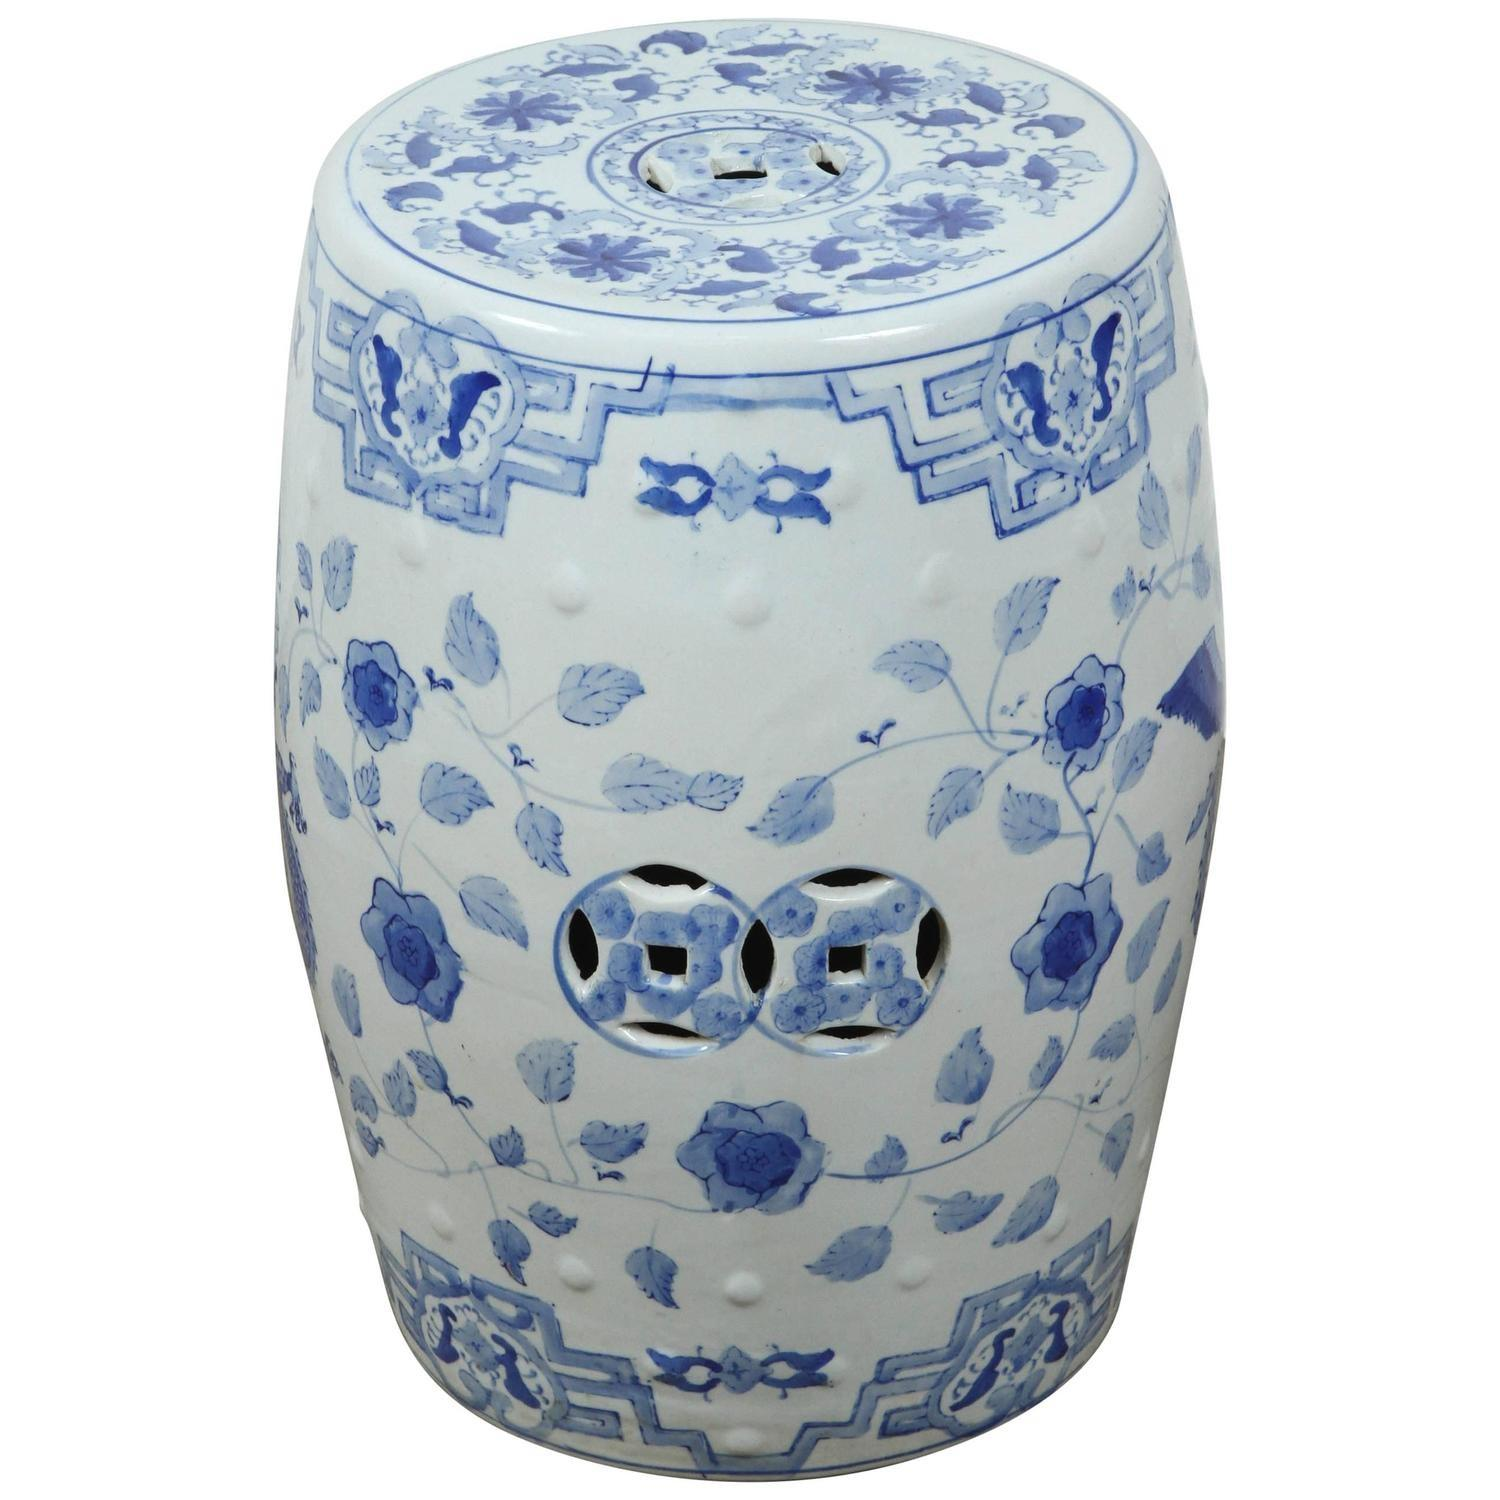 Uncategorized Chinese Ceramic Stool